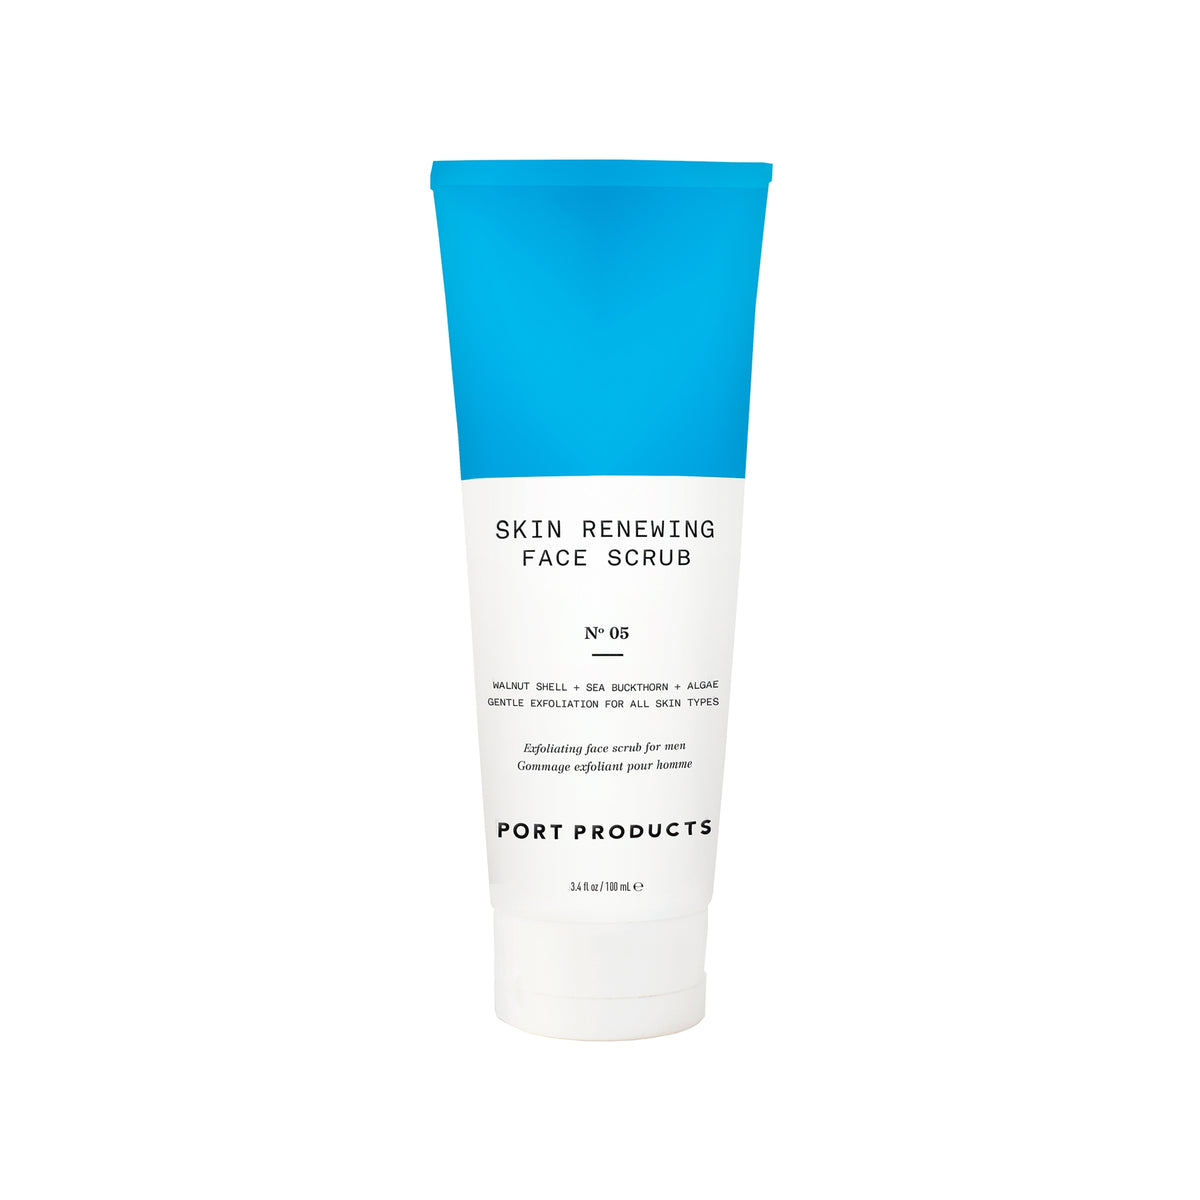 Port Products Skin Renewing Face Scrub